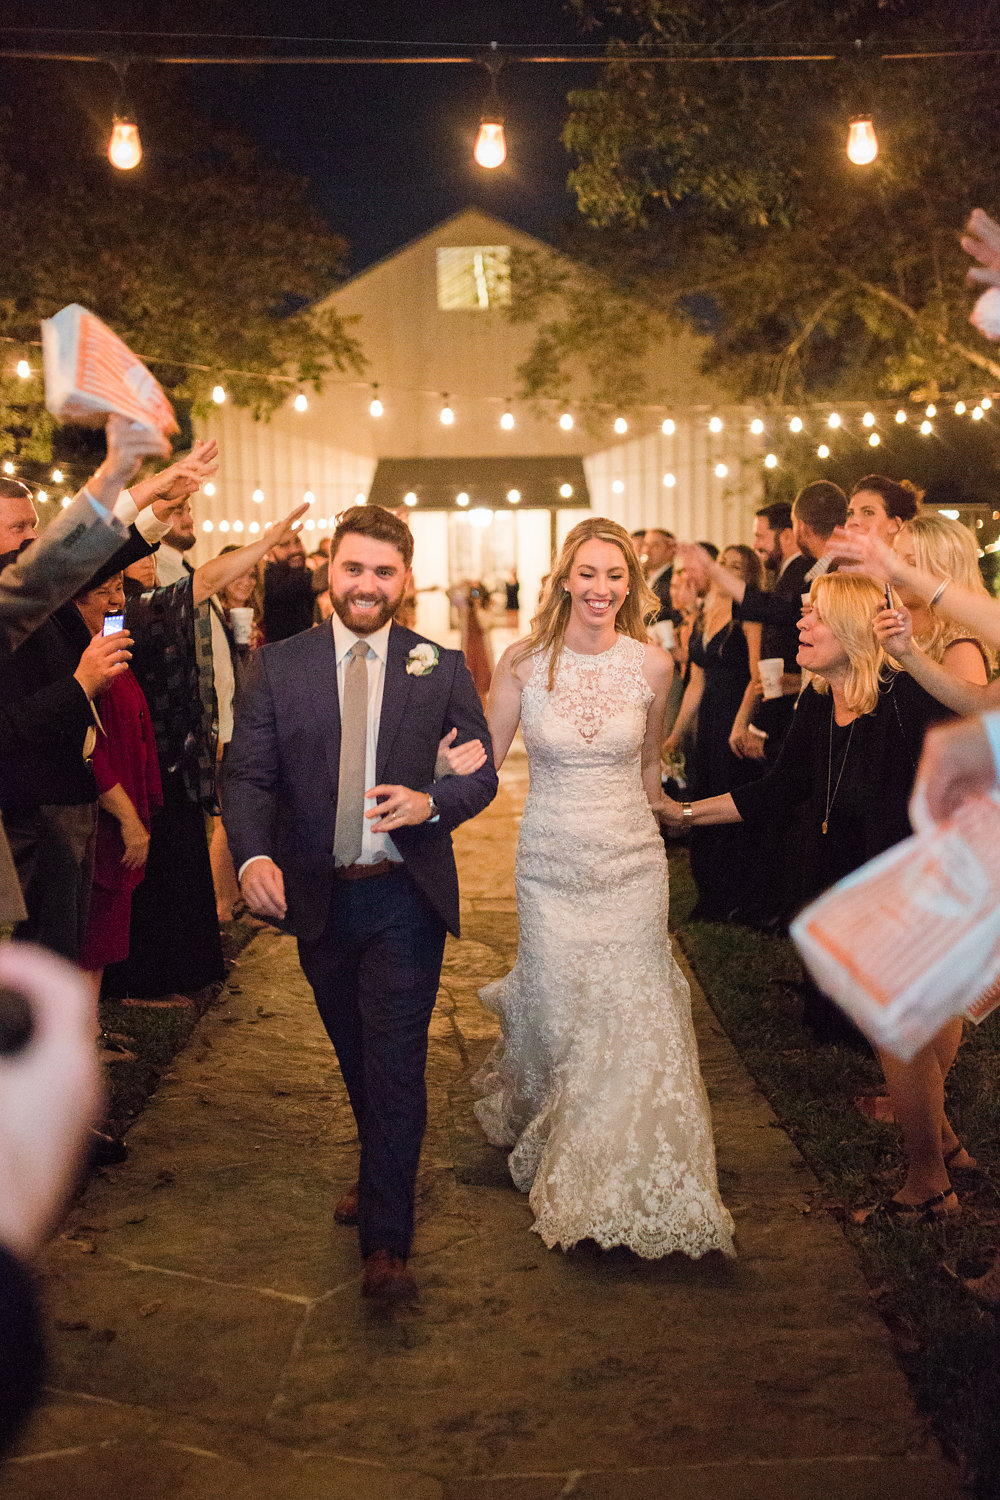 Sending off the newlyweds with cheers and Whataburger!